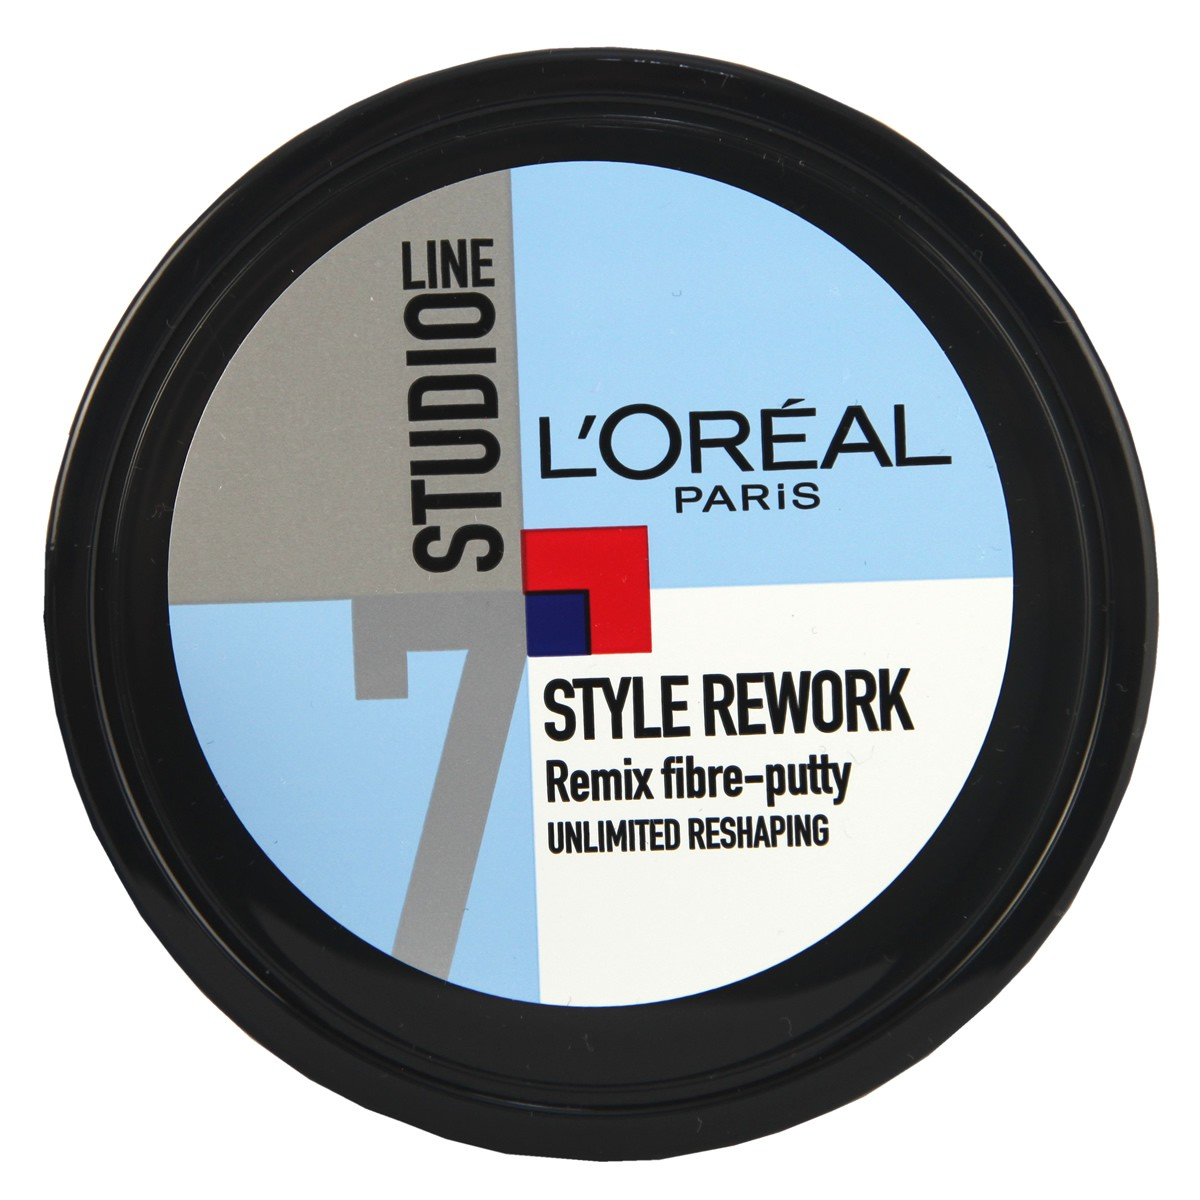 L'Oreal Paris Studio Line Style Rework Remix Fibre Putty